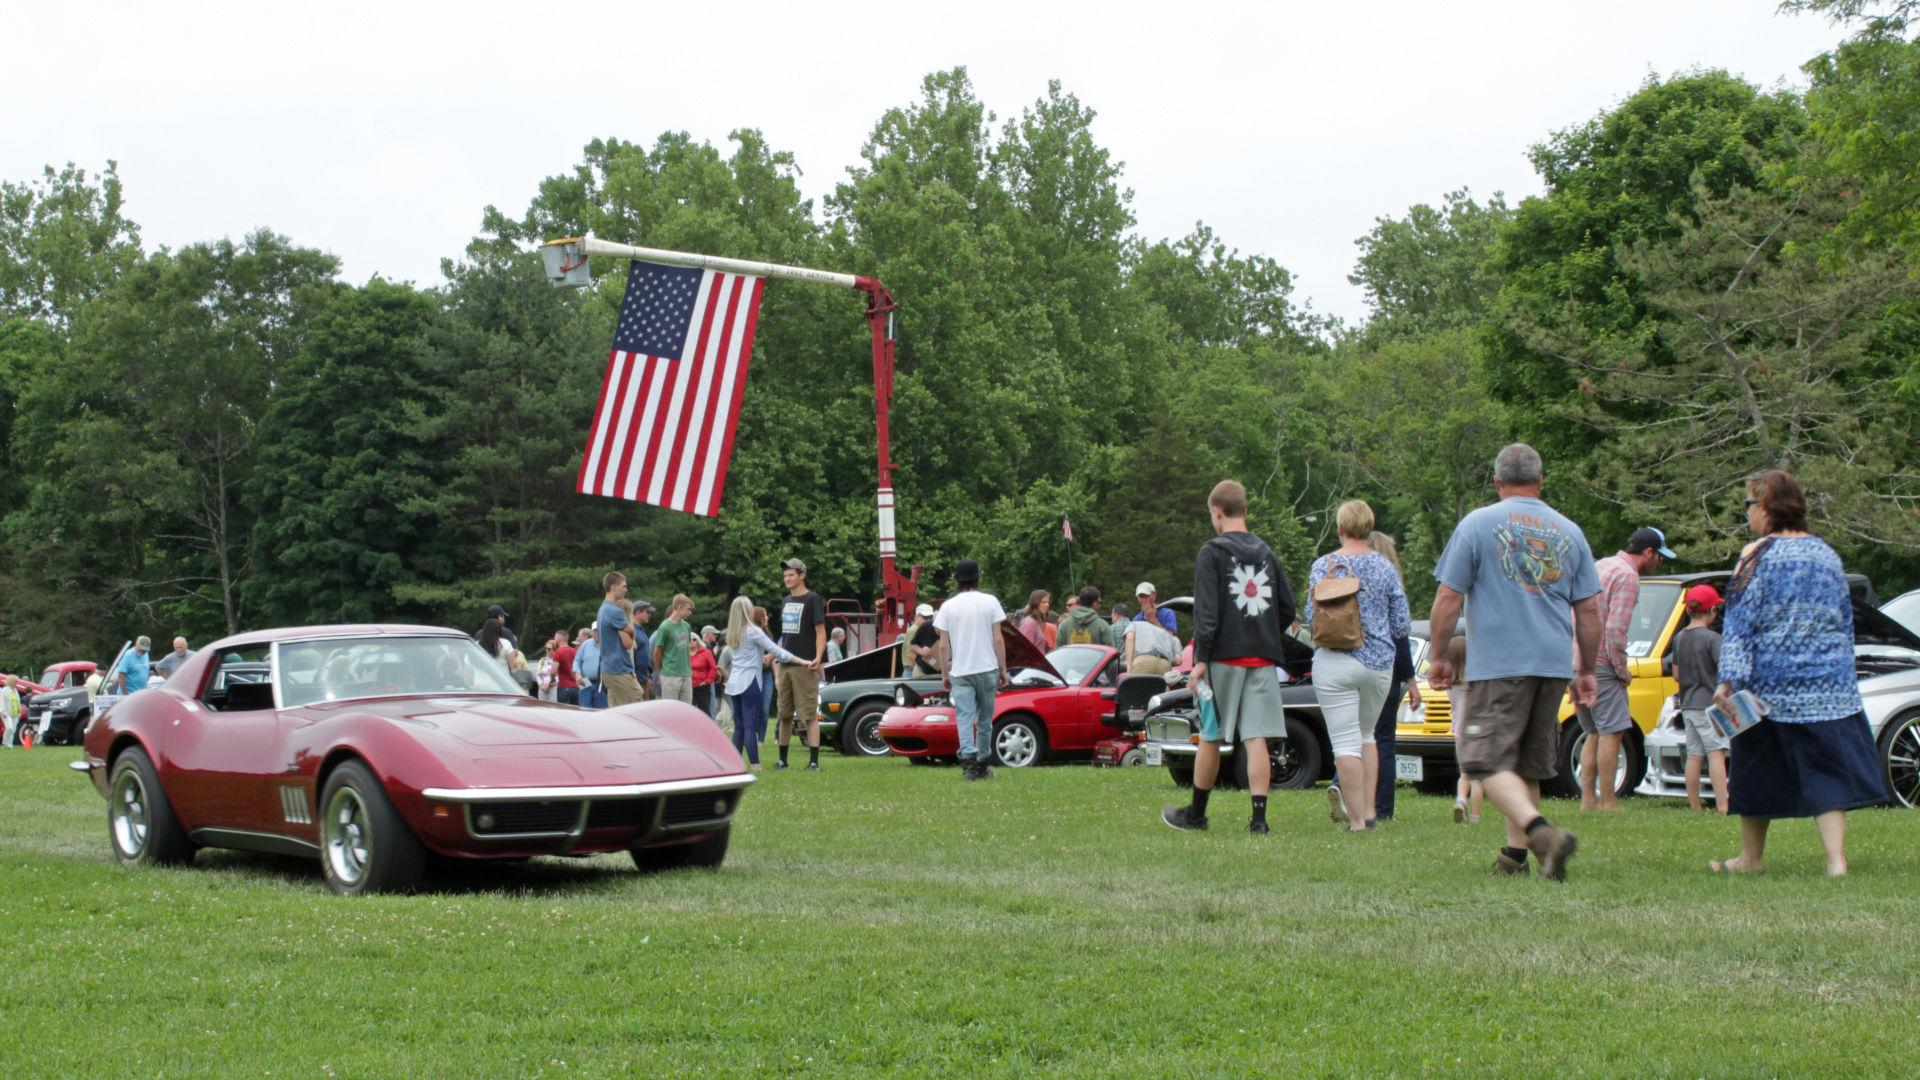 Lions Clubs Th Car Show Video Gallery Primepublisherscom - Nh car show bedford